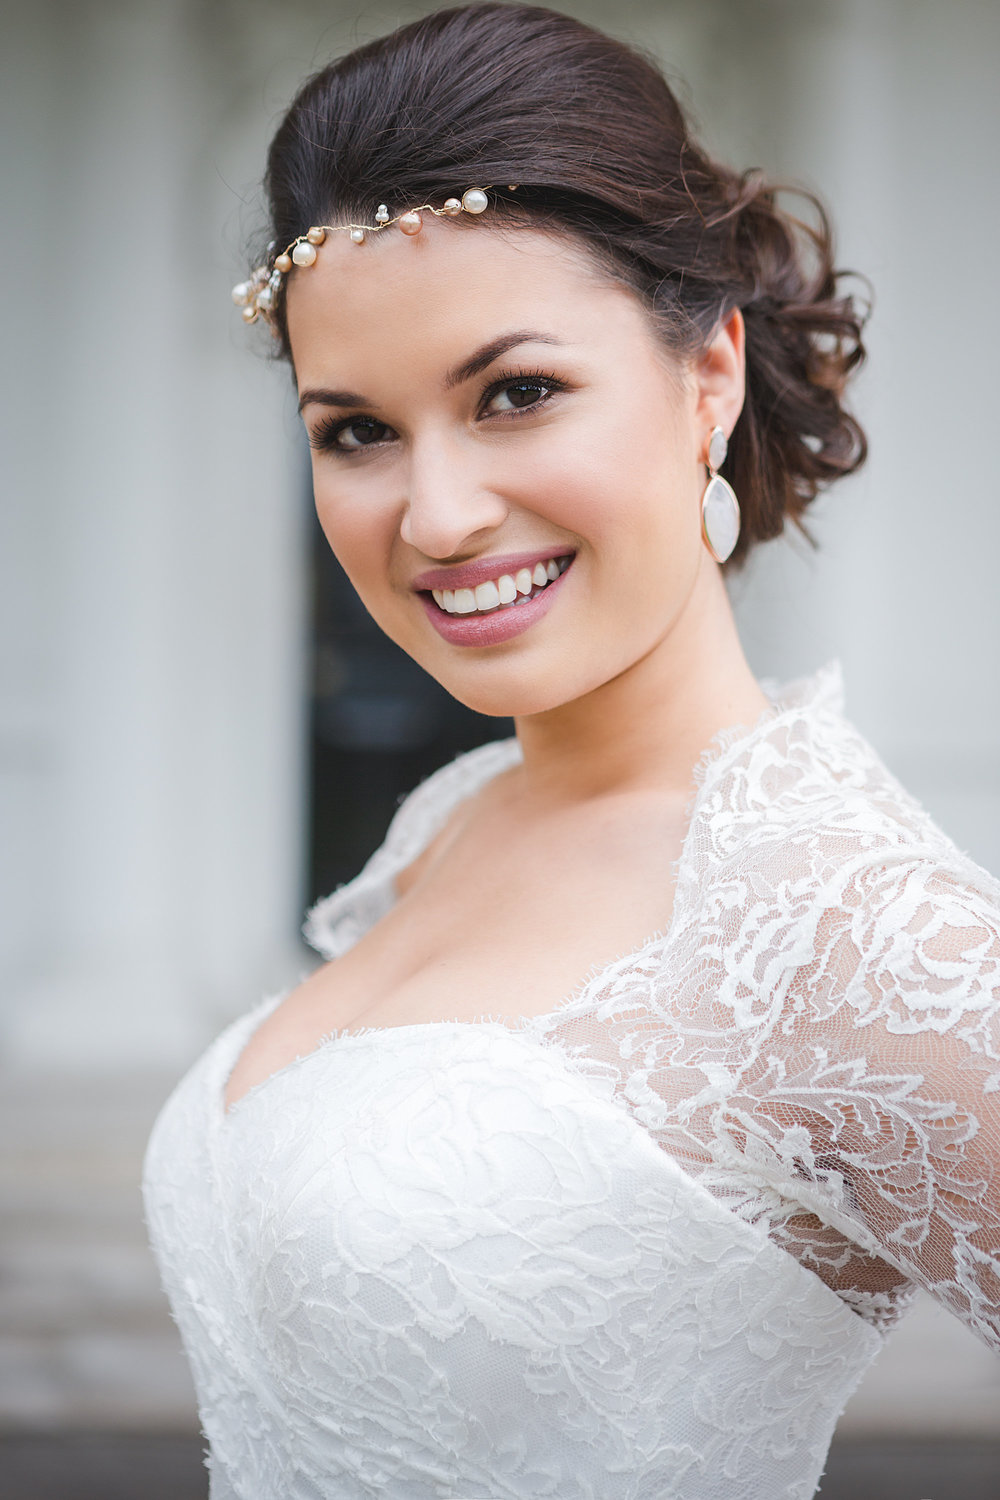 Bridal Hair and Makeup Boreham House